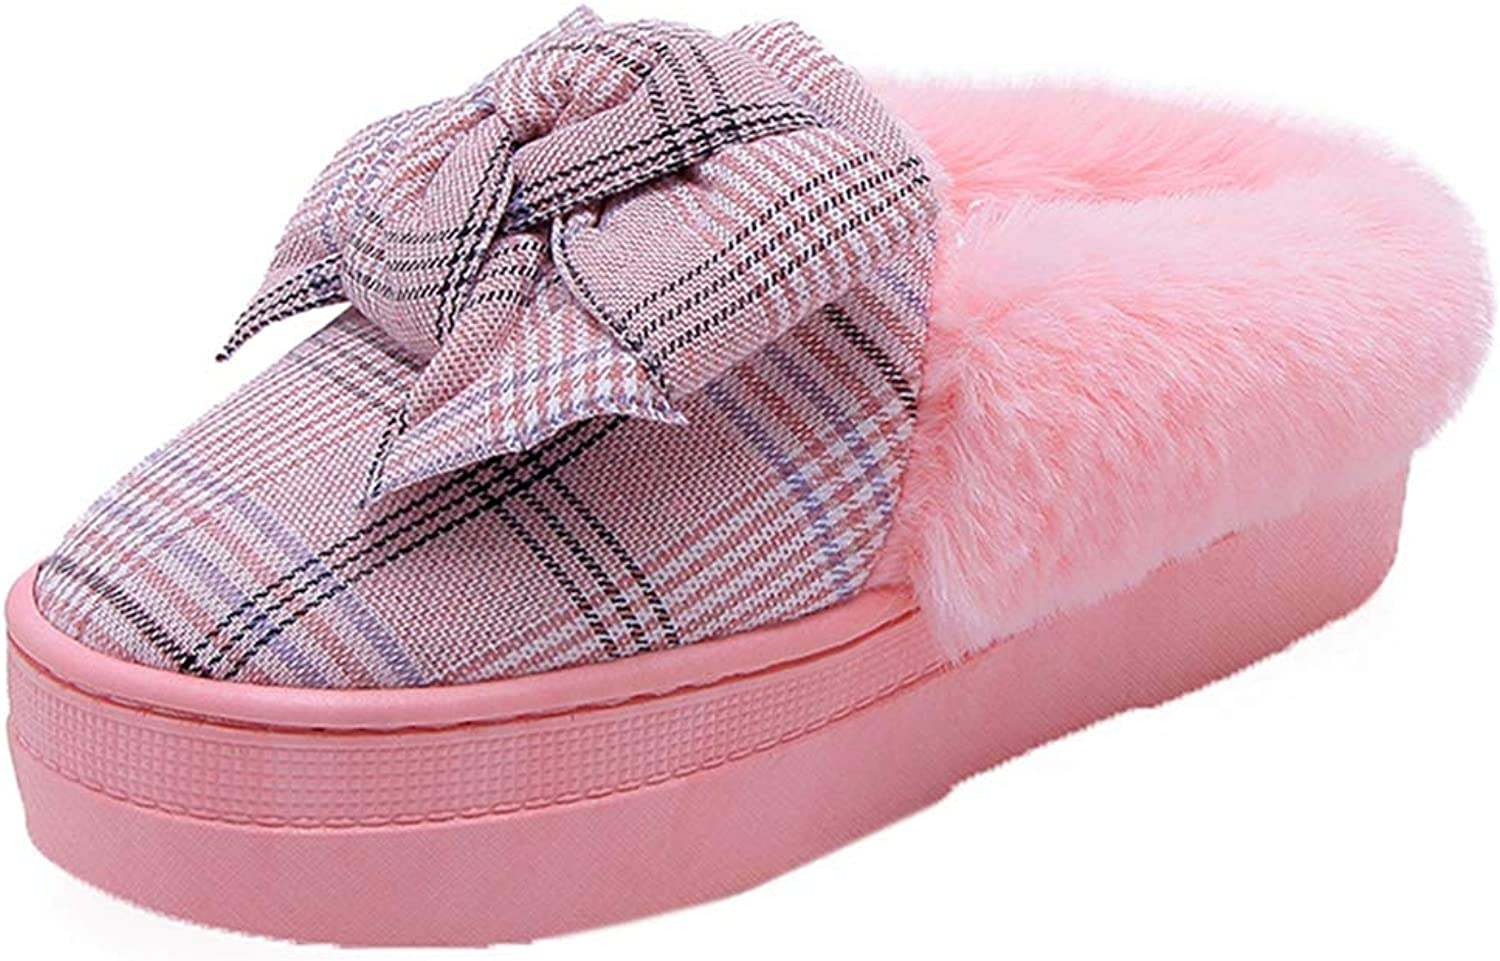 Fashion Plaid Bow Warm Winter Slippers Women Thick Platform shoes Soft Furry Indoor House Home Slippers